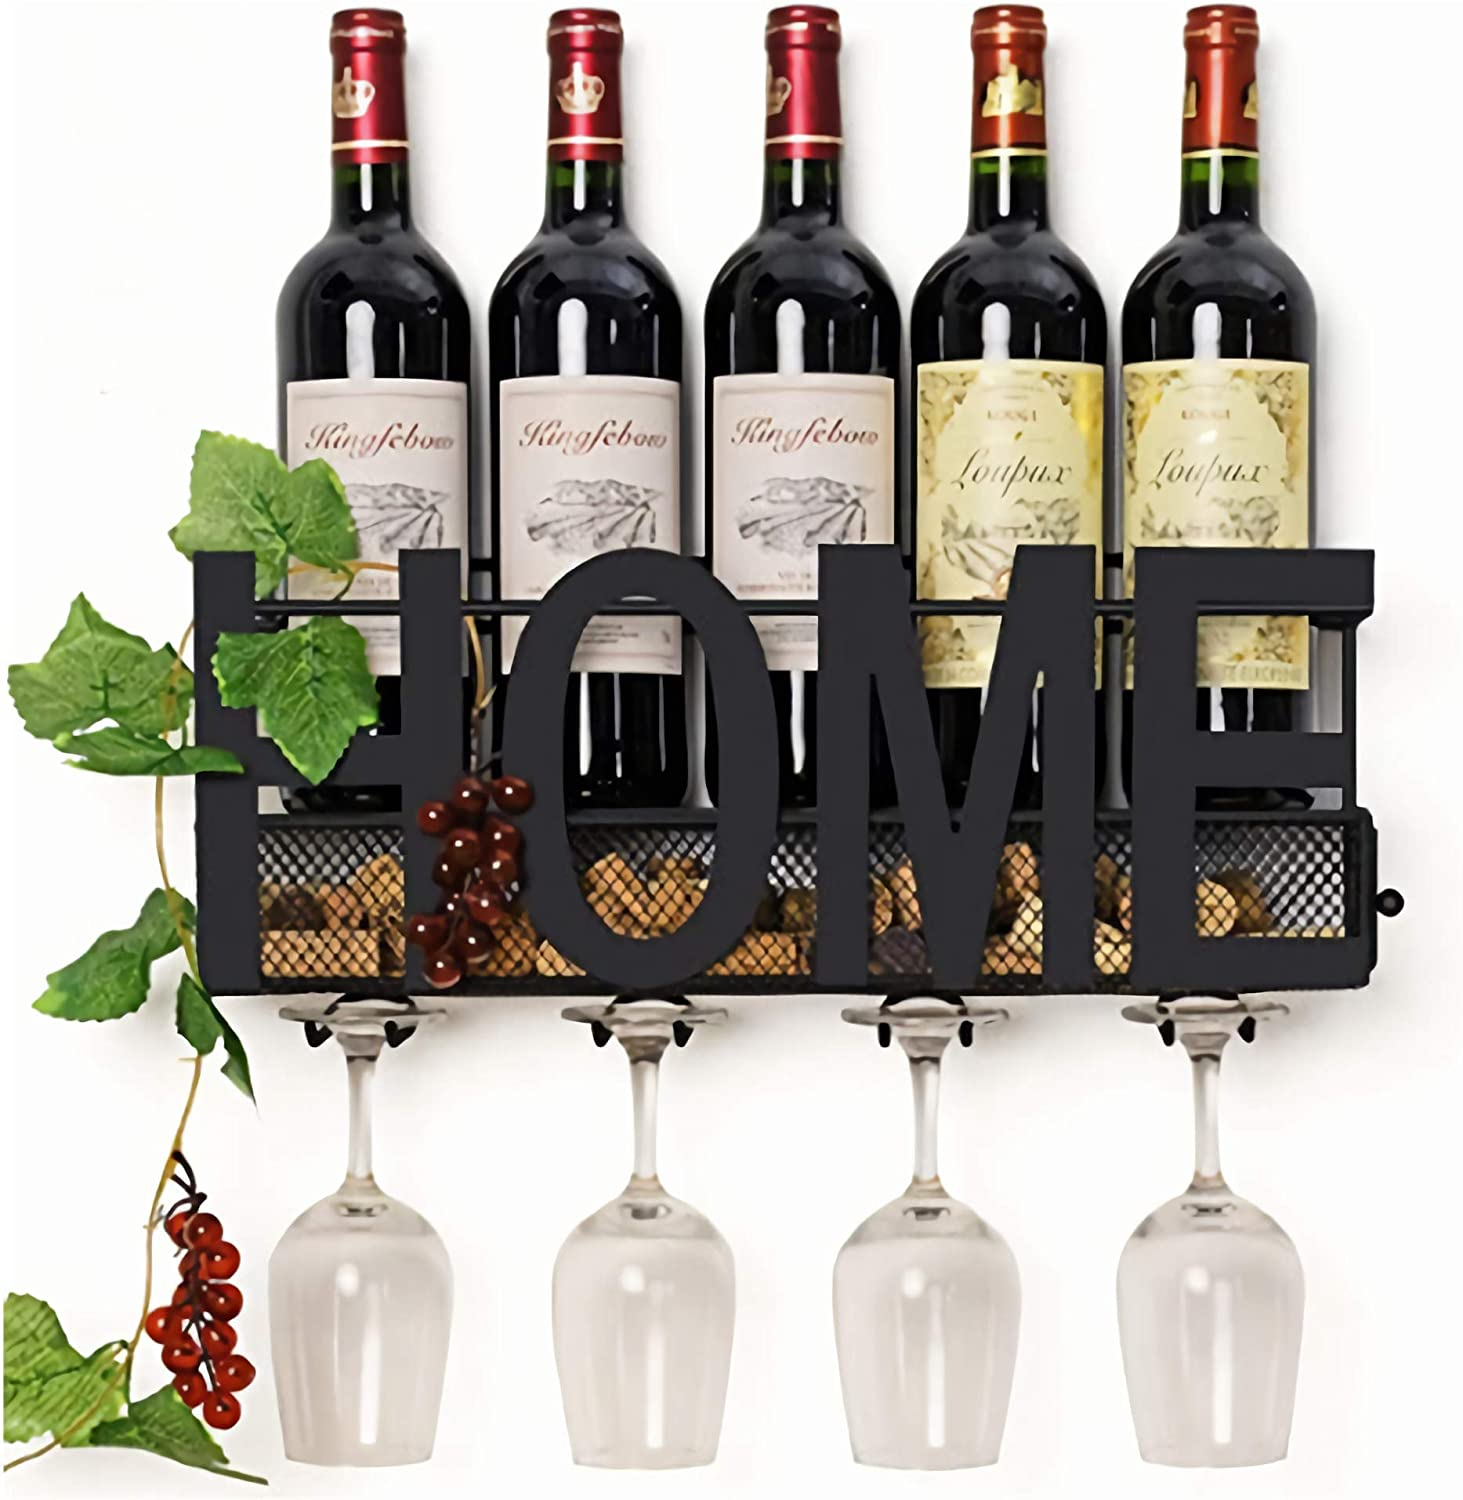 Wall Mounted Wine Rack - Bottle & Glass Holder - Cork Storage -Store Wine, soda, Champagne - Come with 6 Cork Wine Charms - Home &Kitchen Décor - Storage Rack